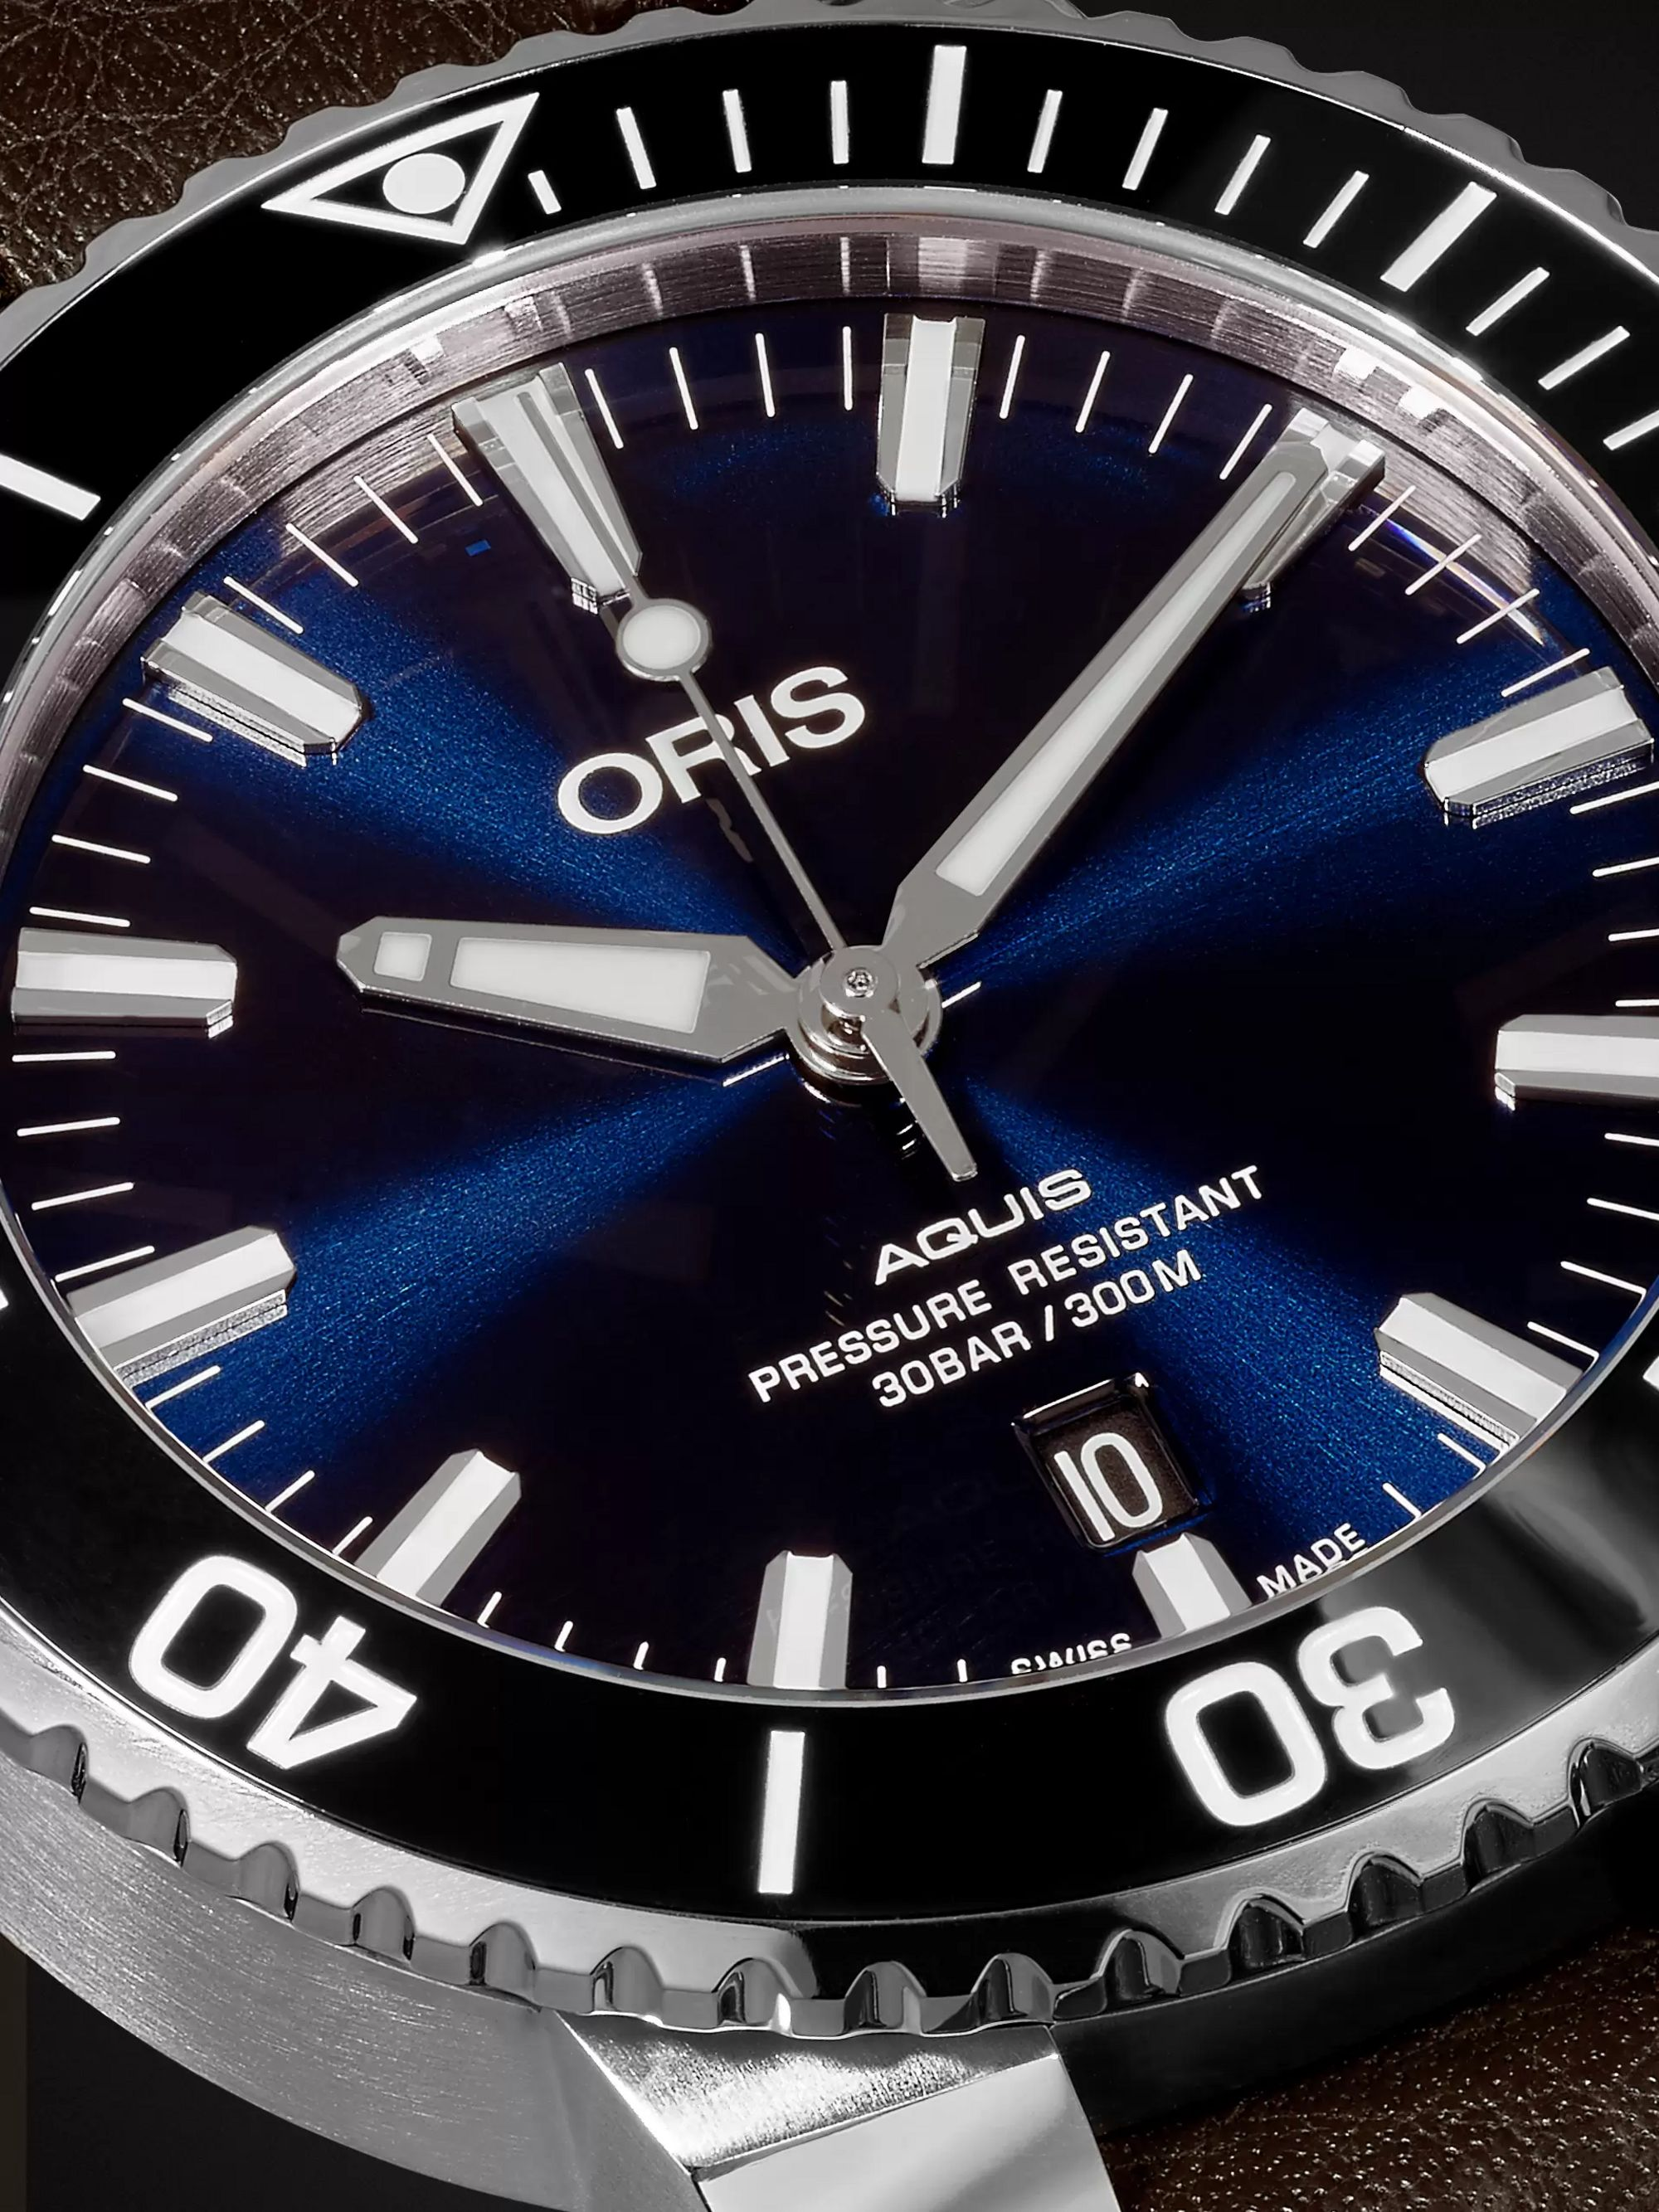 Oris Aquis 43mm Stainless Steel and Leather Watch, Ref. No. 01 733 7730 4135- 07 5 24 10 EB